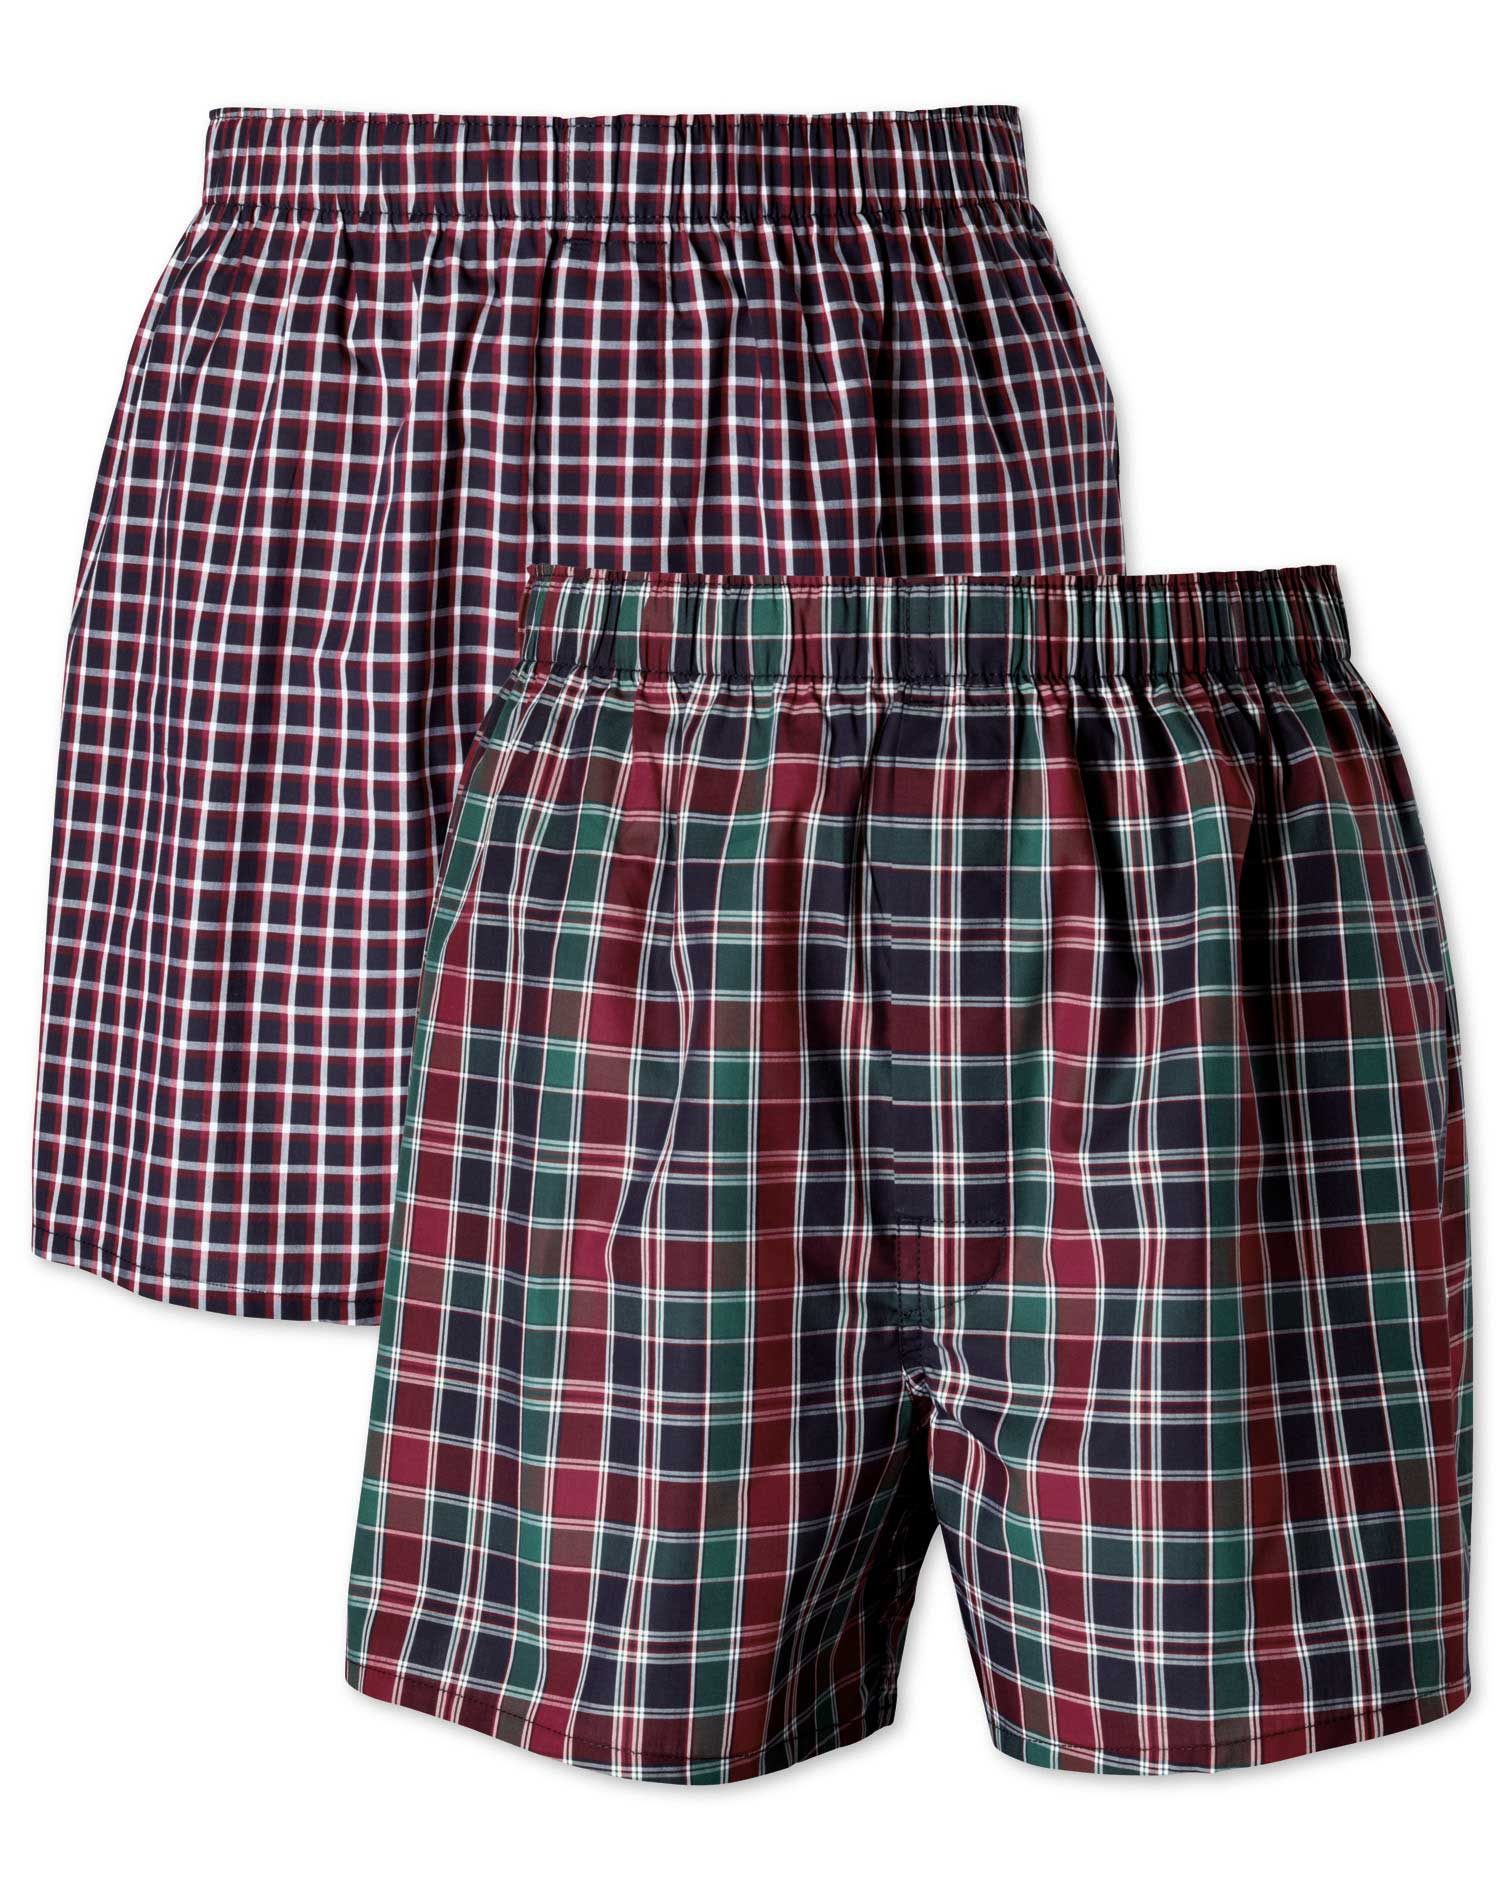 Navy Check 2 Pack Boxers Size XXXL by Charles Tyrwhitt